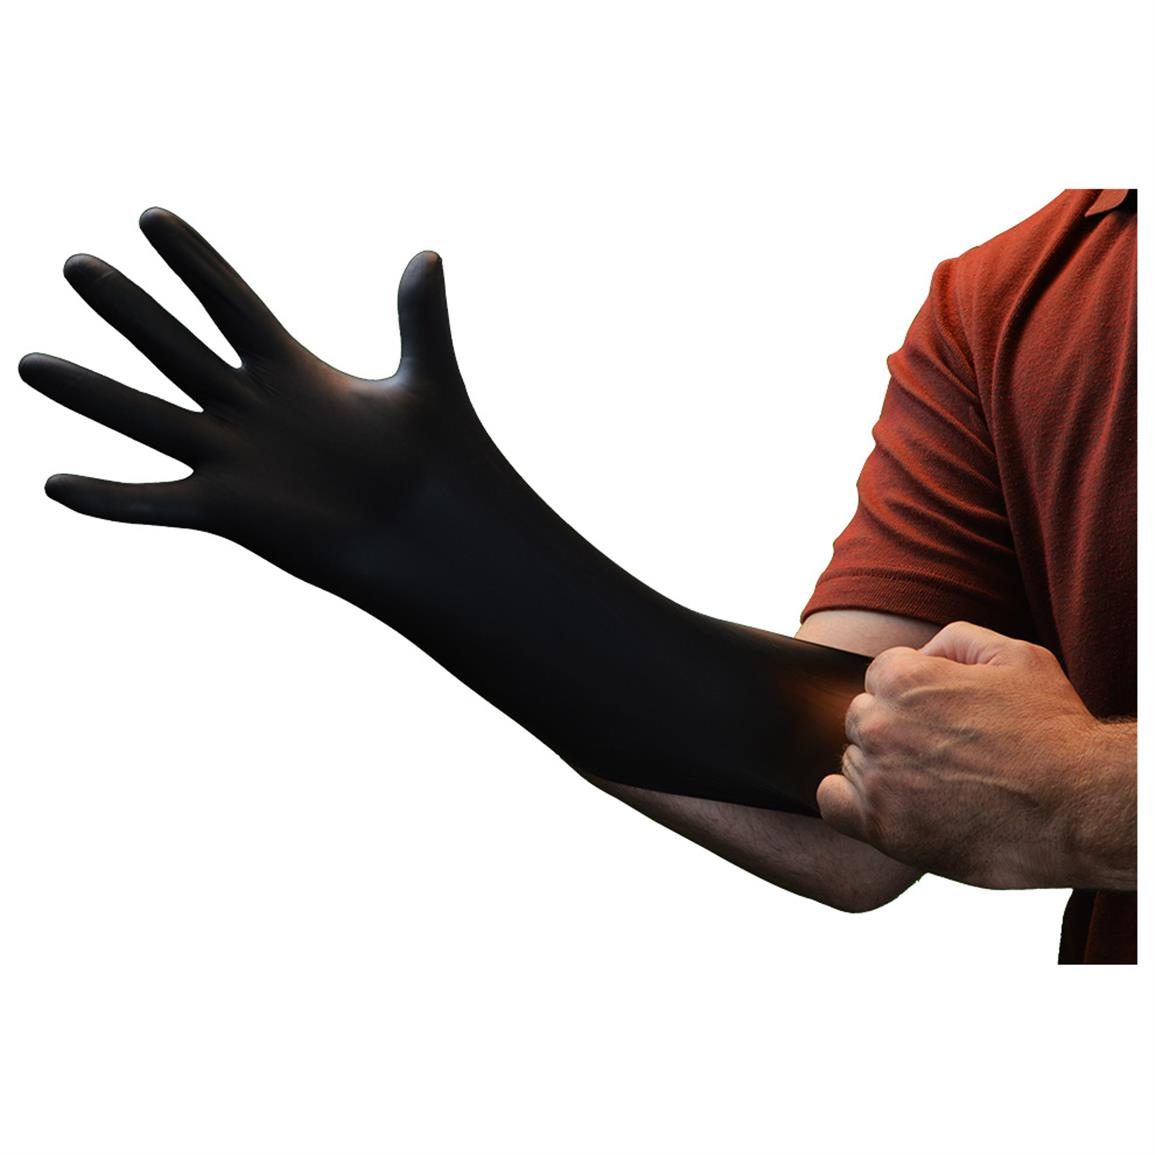 Ambidextrous -- Gloves can be worn on either hand